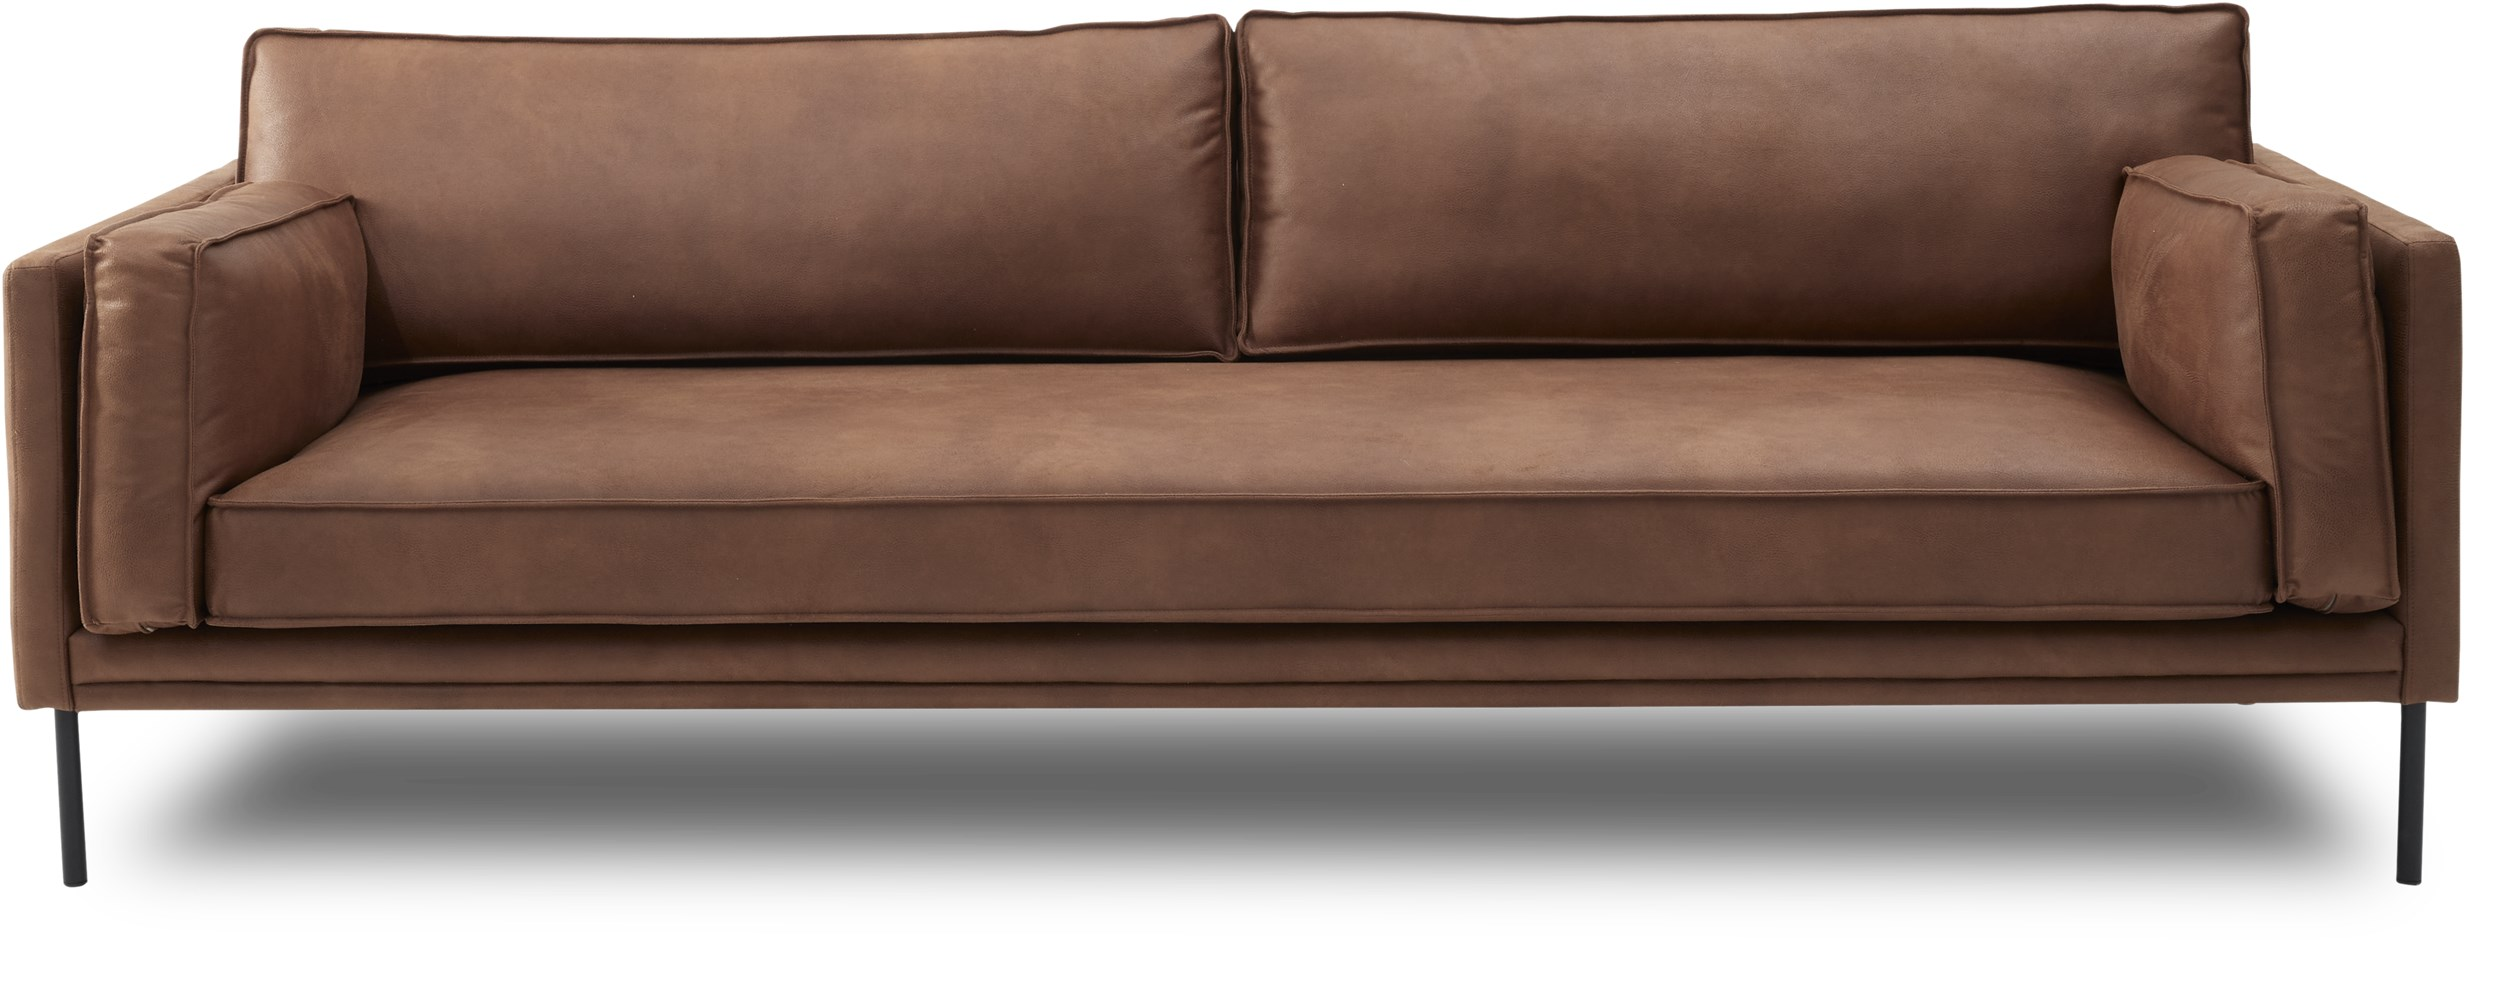 Keep 3 pers Sofa - Kentucky 0261 Cognac bonded læder og ben i sort metal